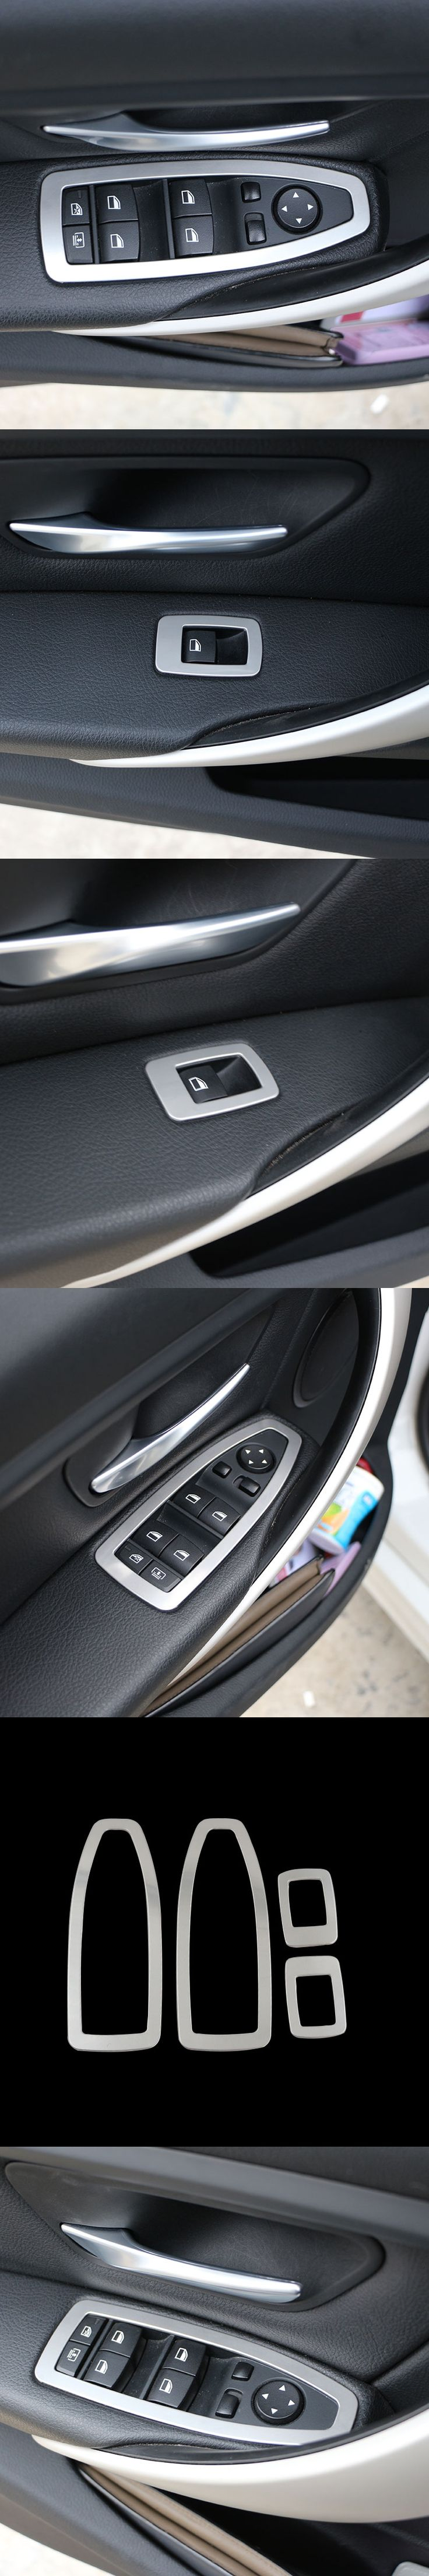 4Pcs/Set Stainless Steel Interior Door Window Switch Cover Molding Trim for BMW F30 F35 320d 320i 328I GT 116I 118I 3 Series